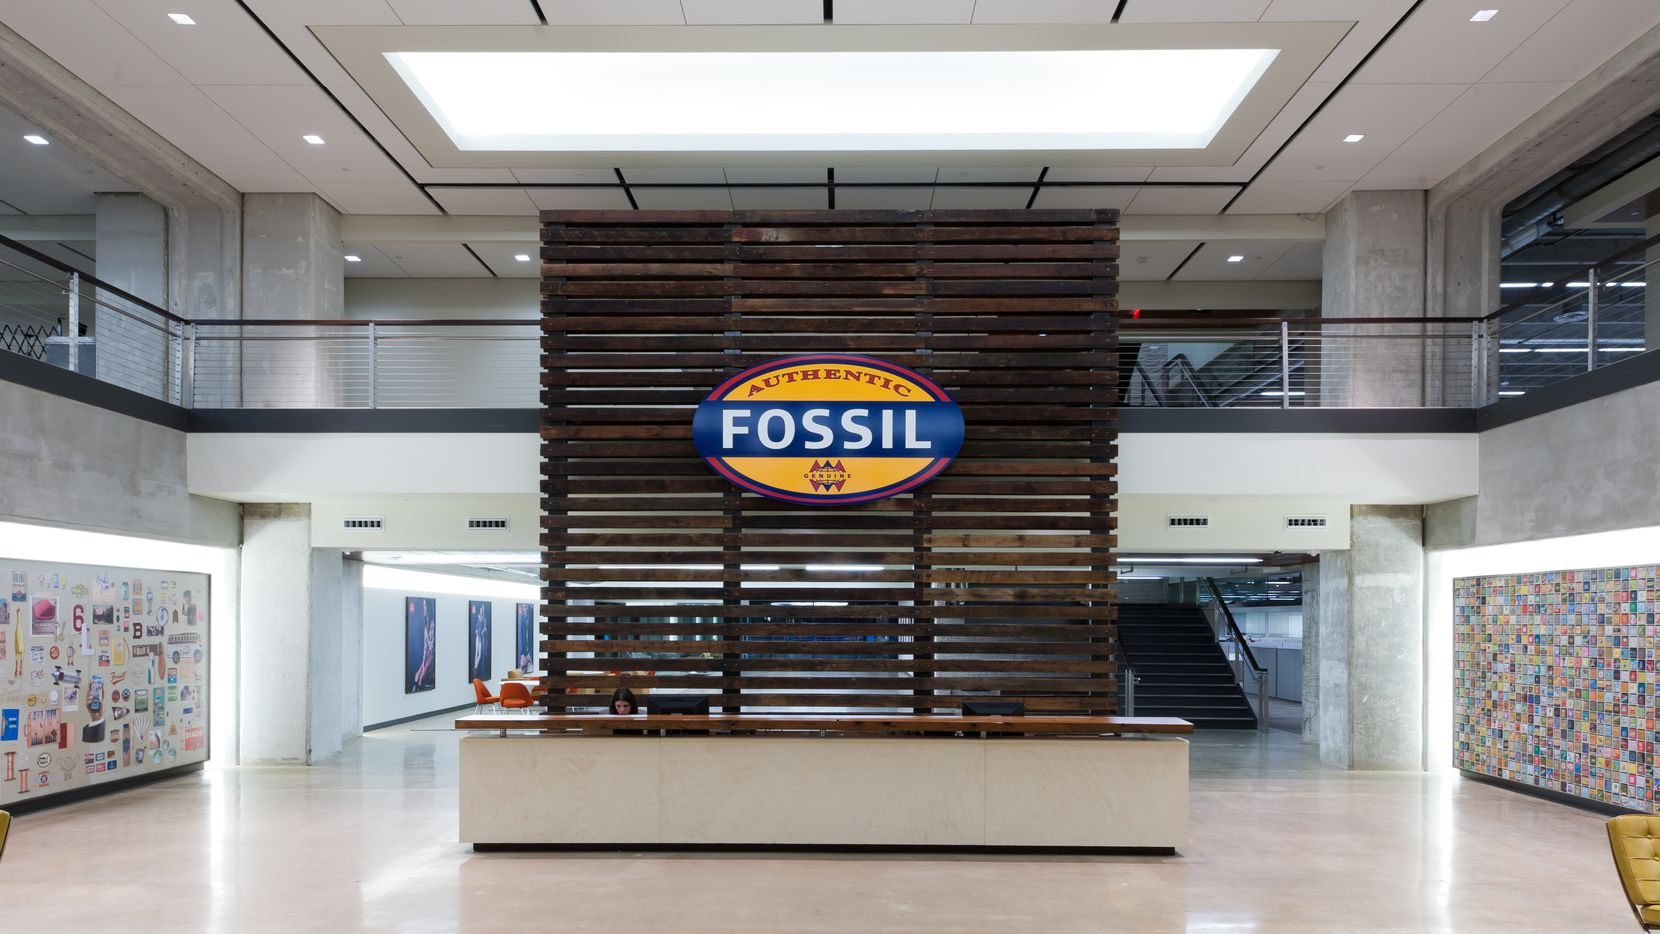 The lobby of the Fossil Group headquarters in Richardson.